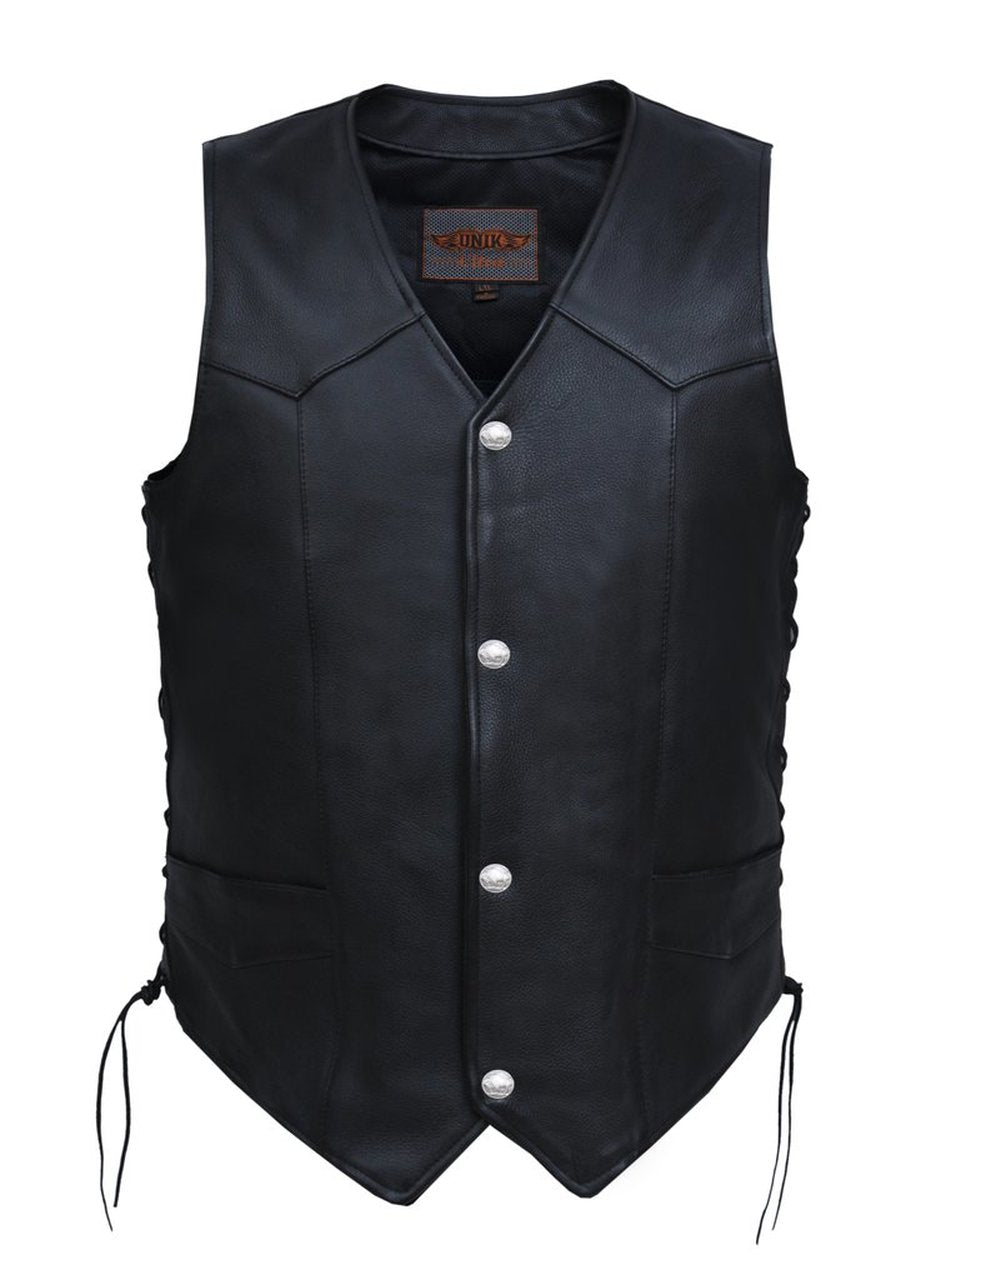 Unik Intl Men's Classic Leathe Vest with Buffalo Nickles 0331.BF